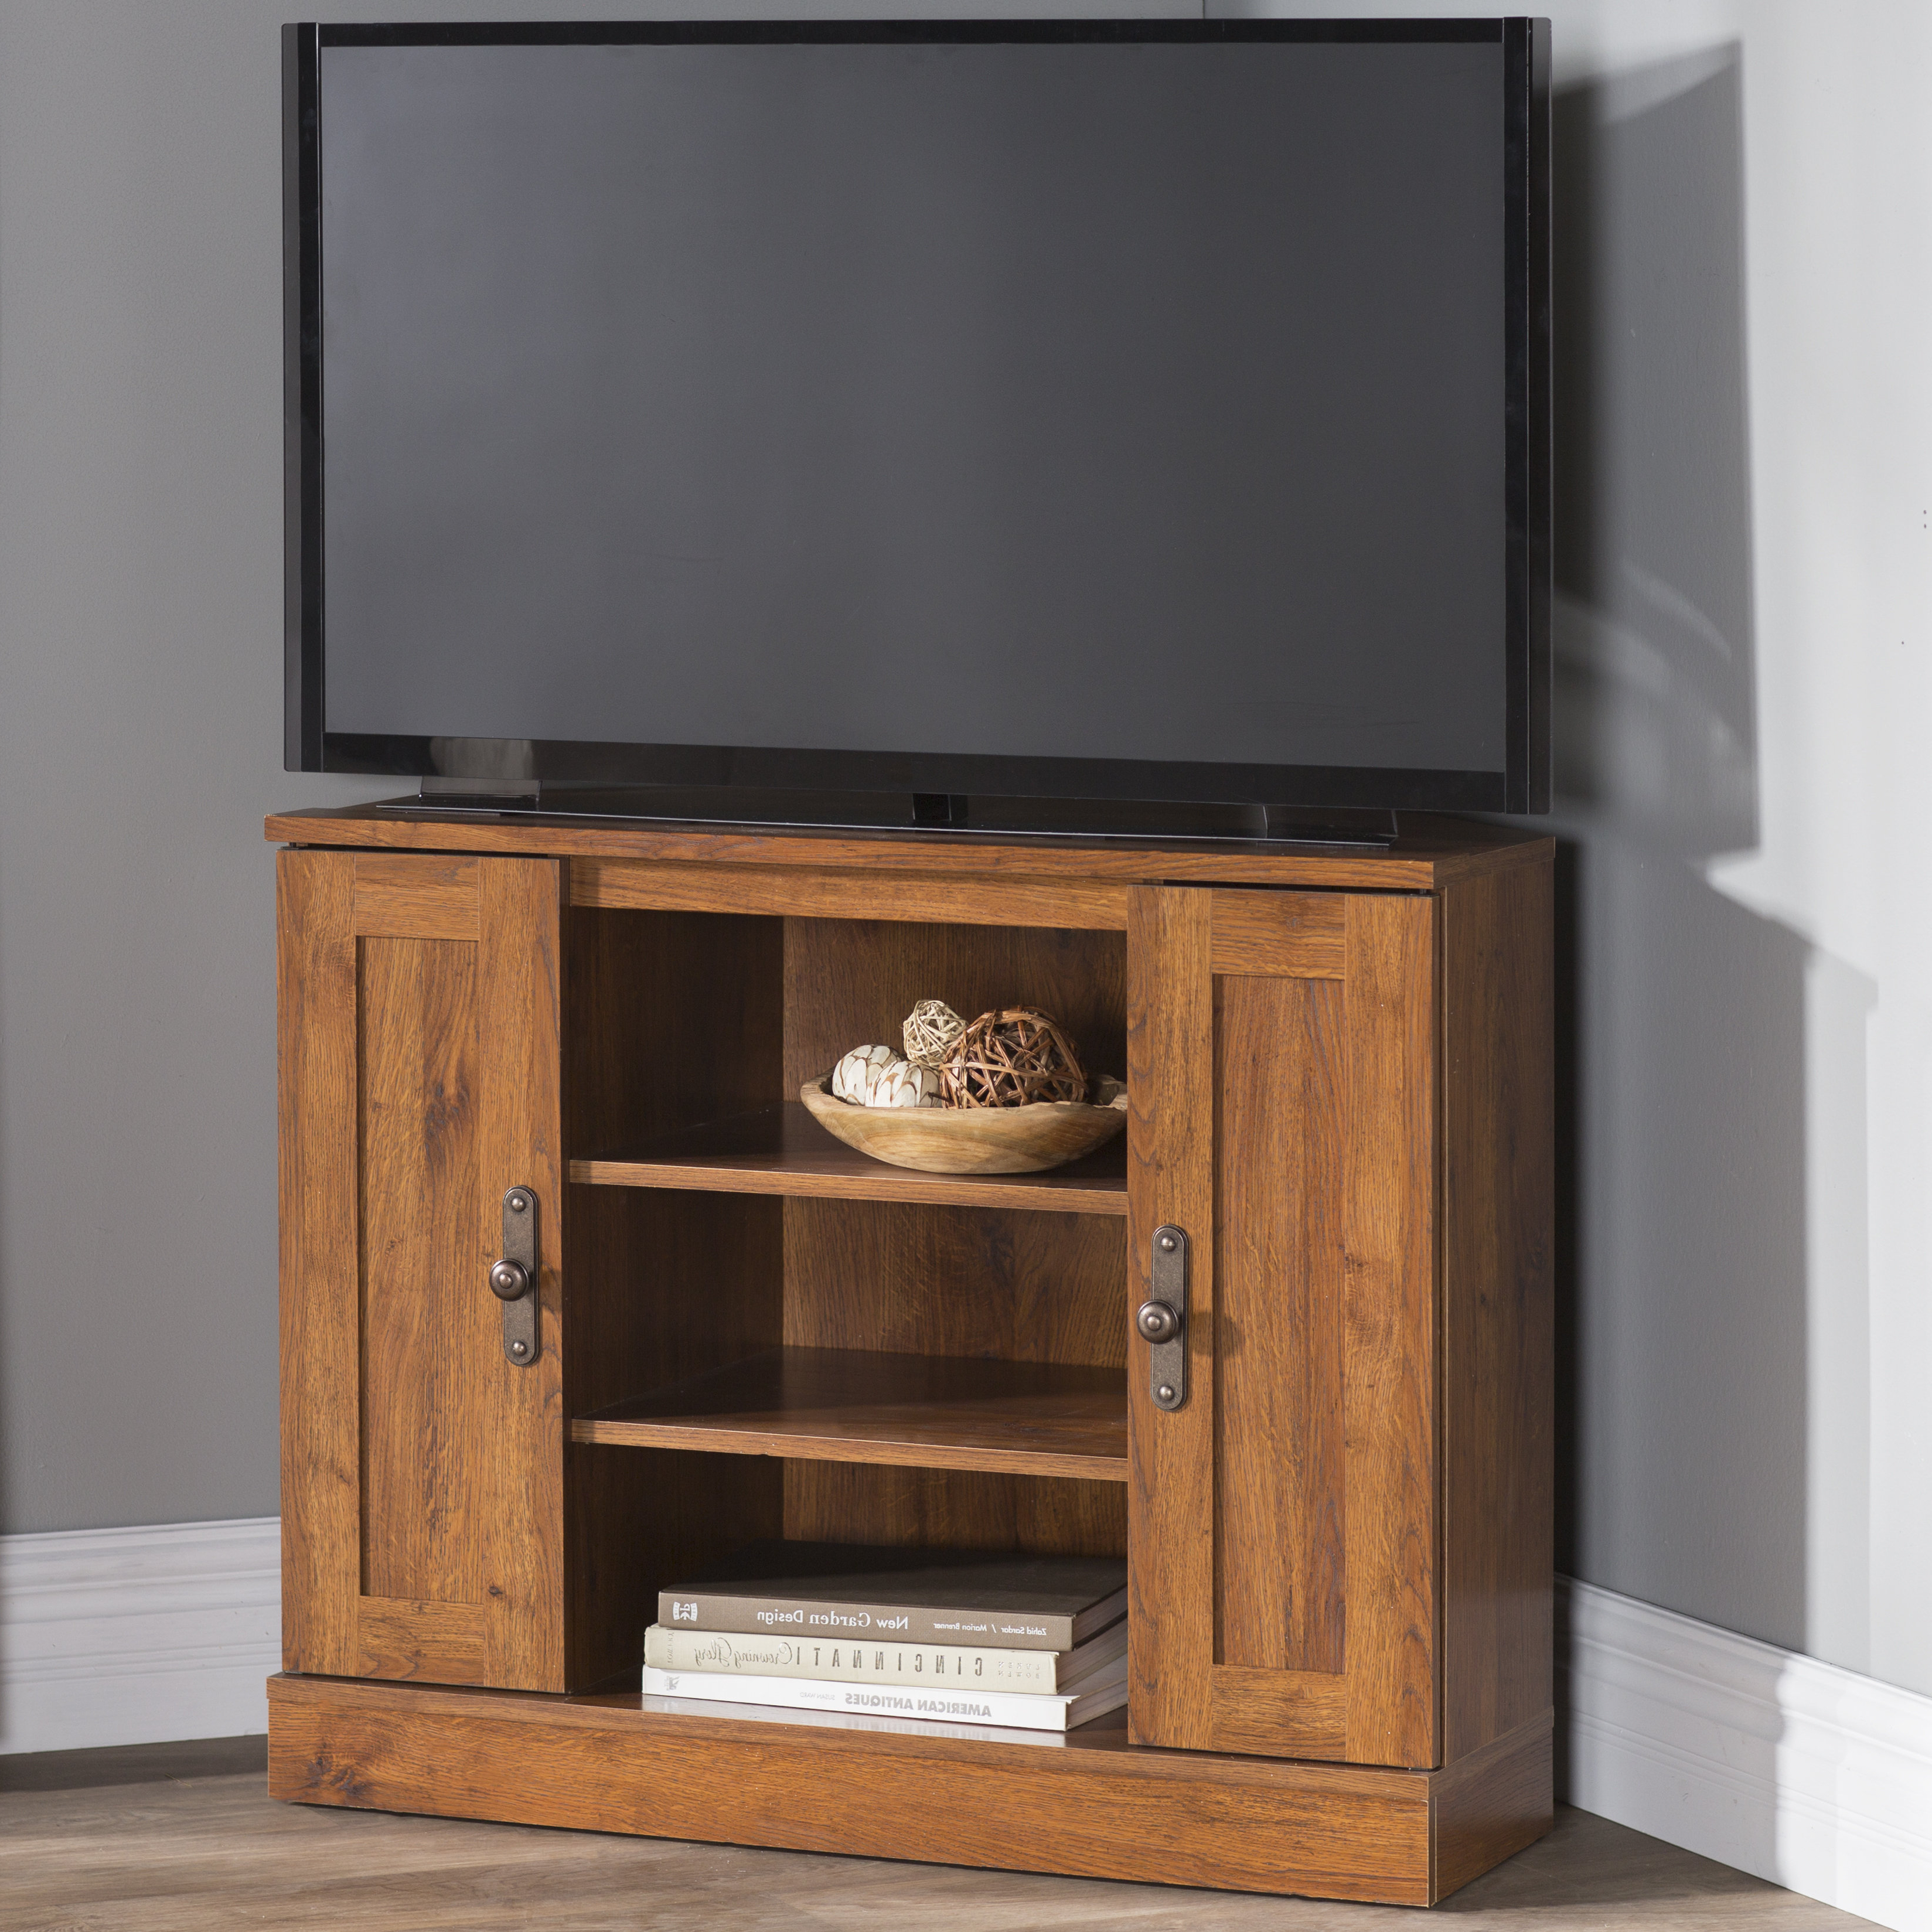 "Most Recent Alcott Hill Englewood Corner Tv Stand For Tvs Up To 37"" & Reviews In Low Corner Tv Cabinets (View 11 of 20)"